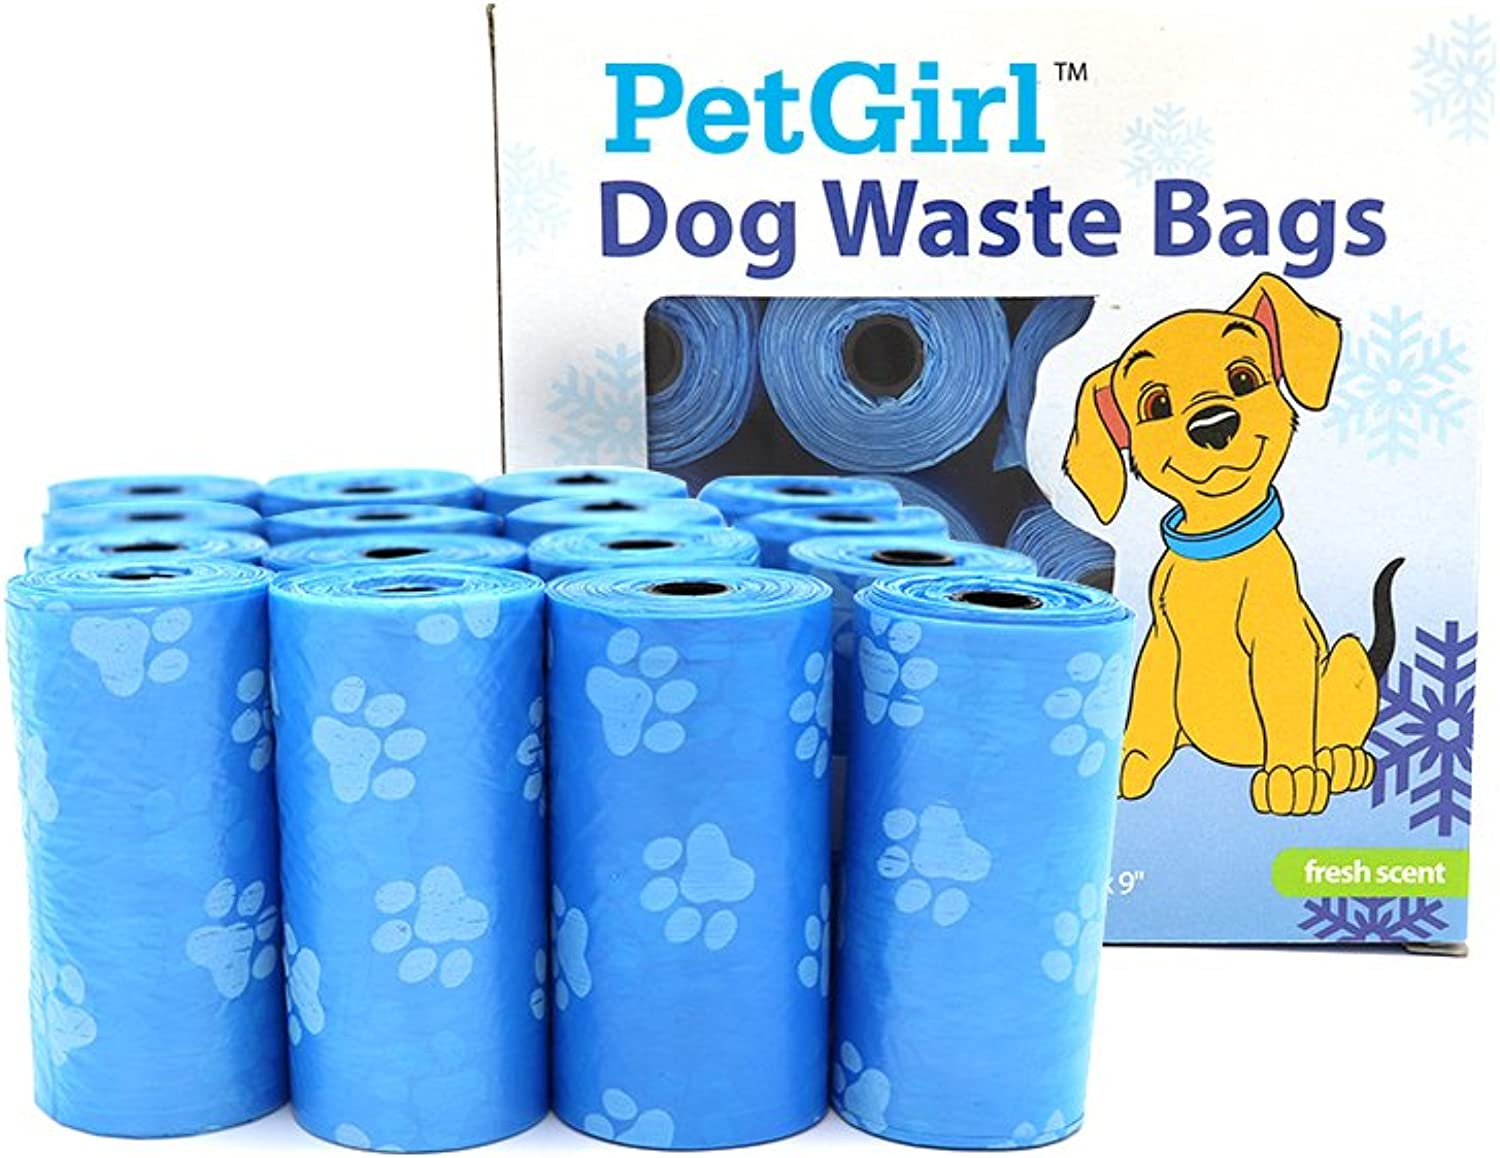 Doggie Bags Doggie Poop Waste Bags Unscented LeakProof Doggie Bag Refill